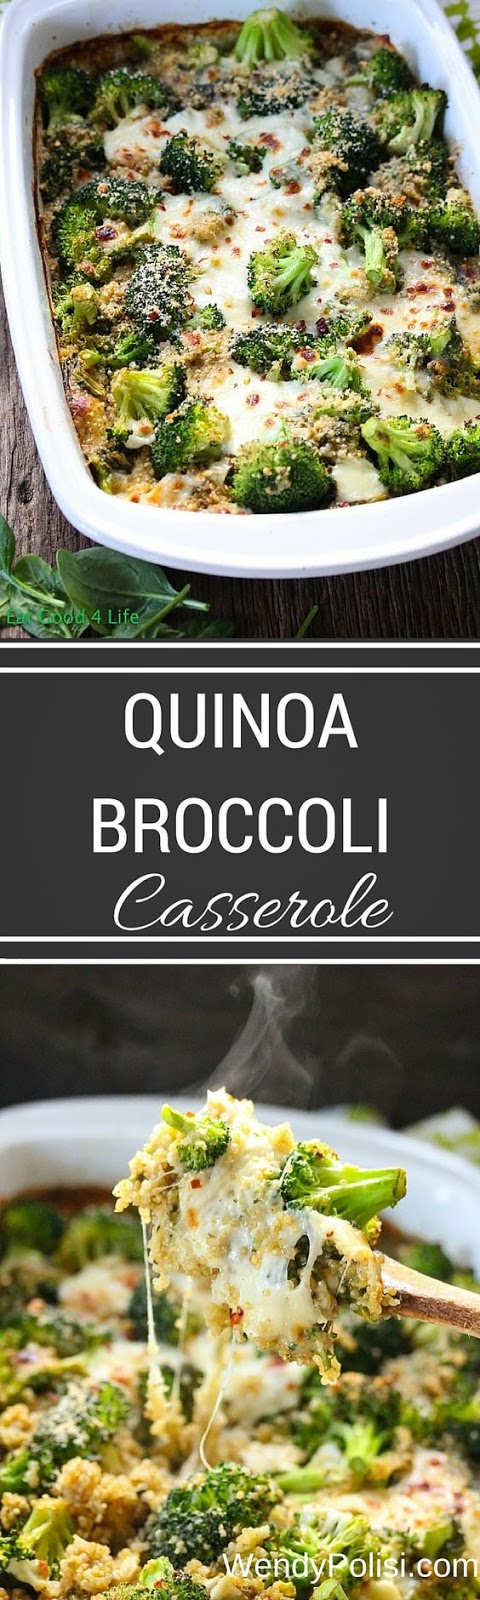 Quinoa Broccoli Casserole, I make something like this as a side but it's not quite enough for a main